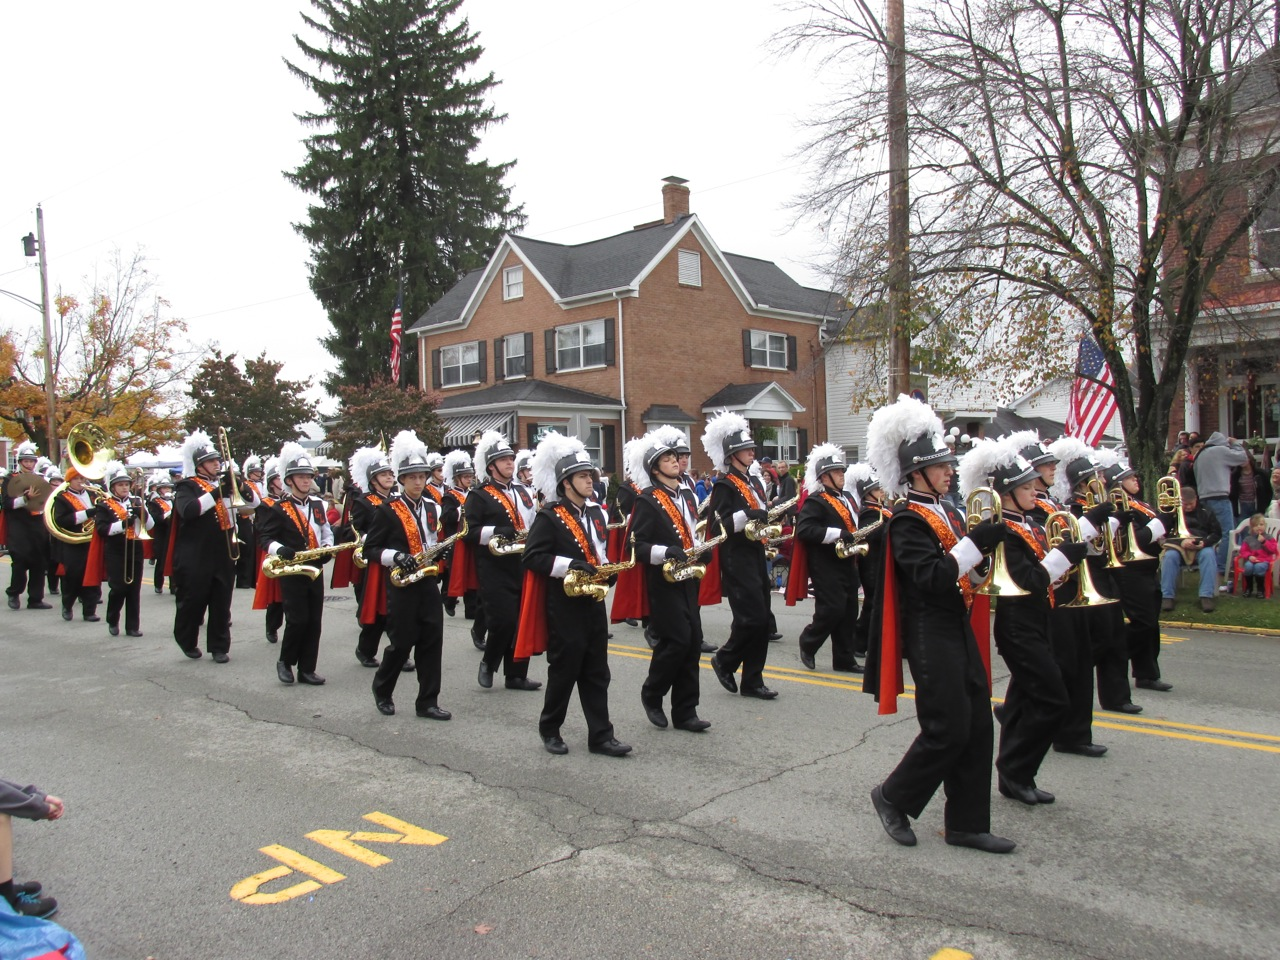 Ligonier Days Parade - October 2014